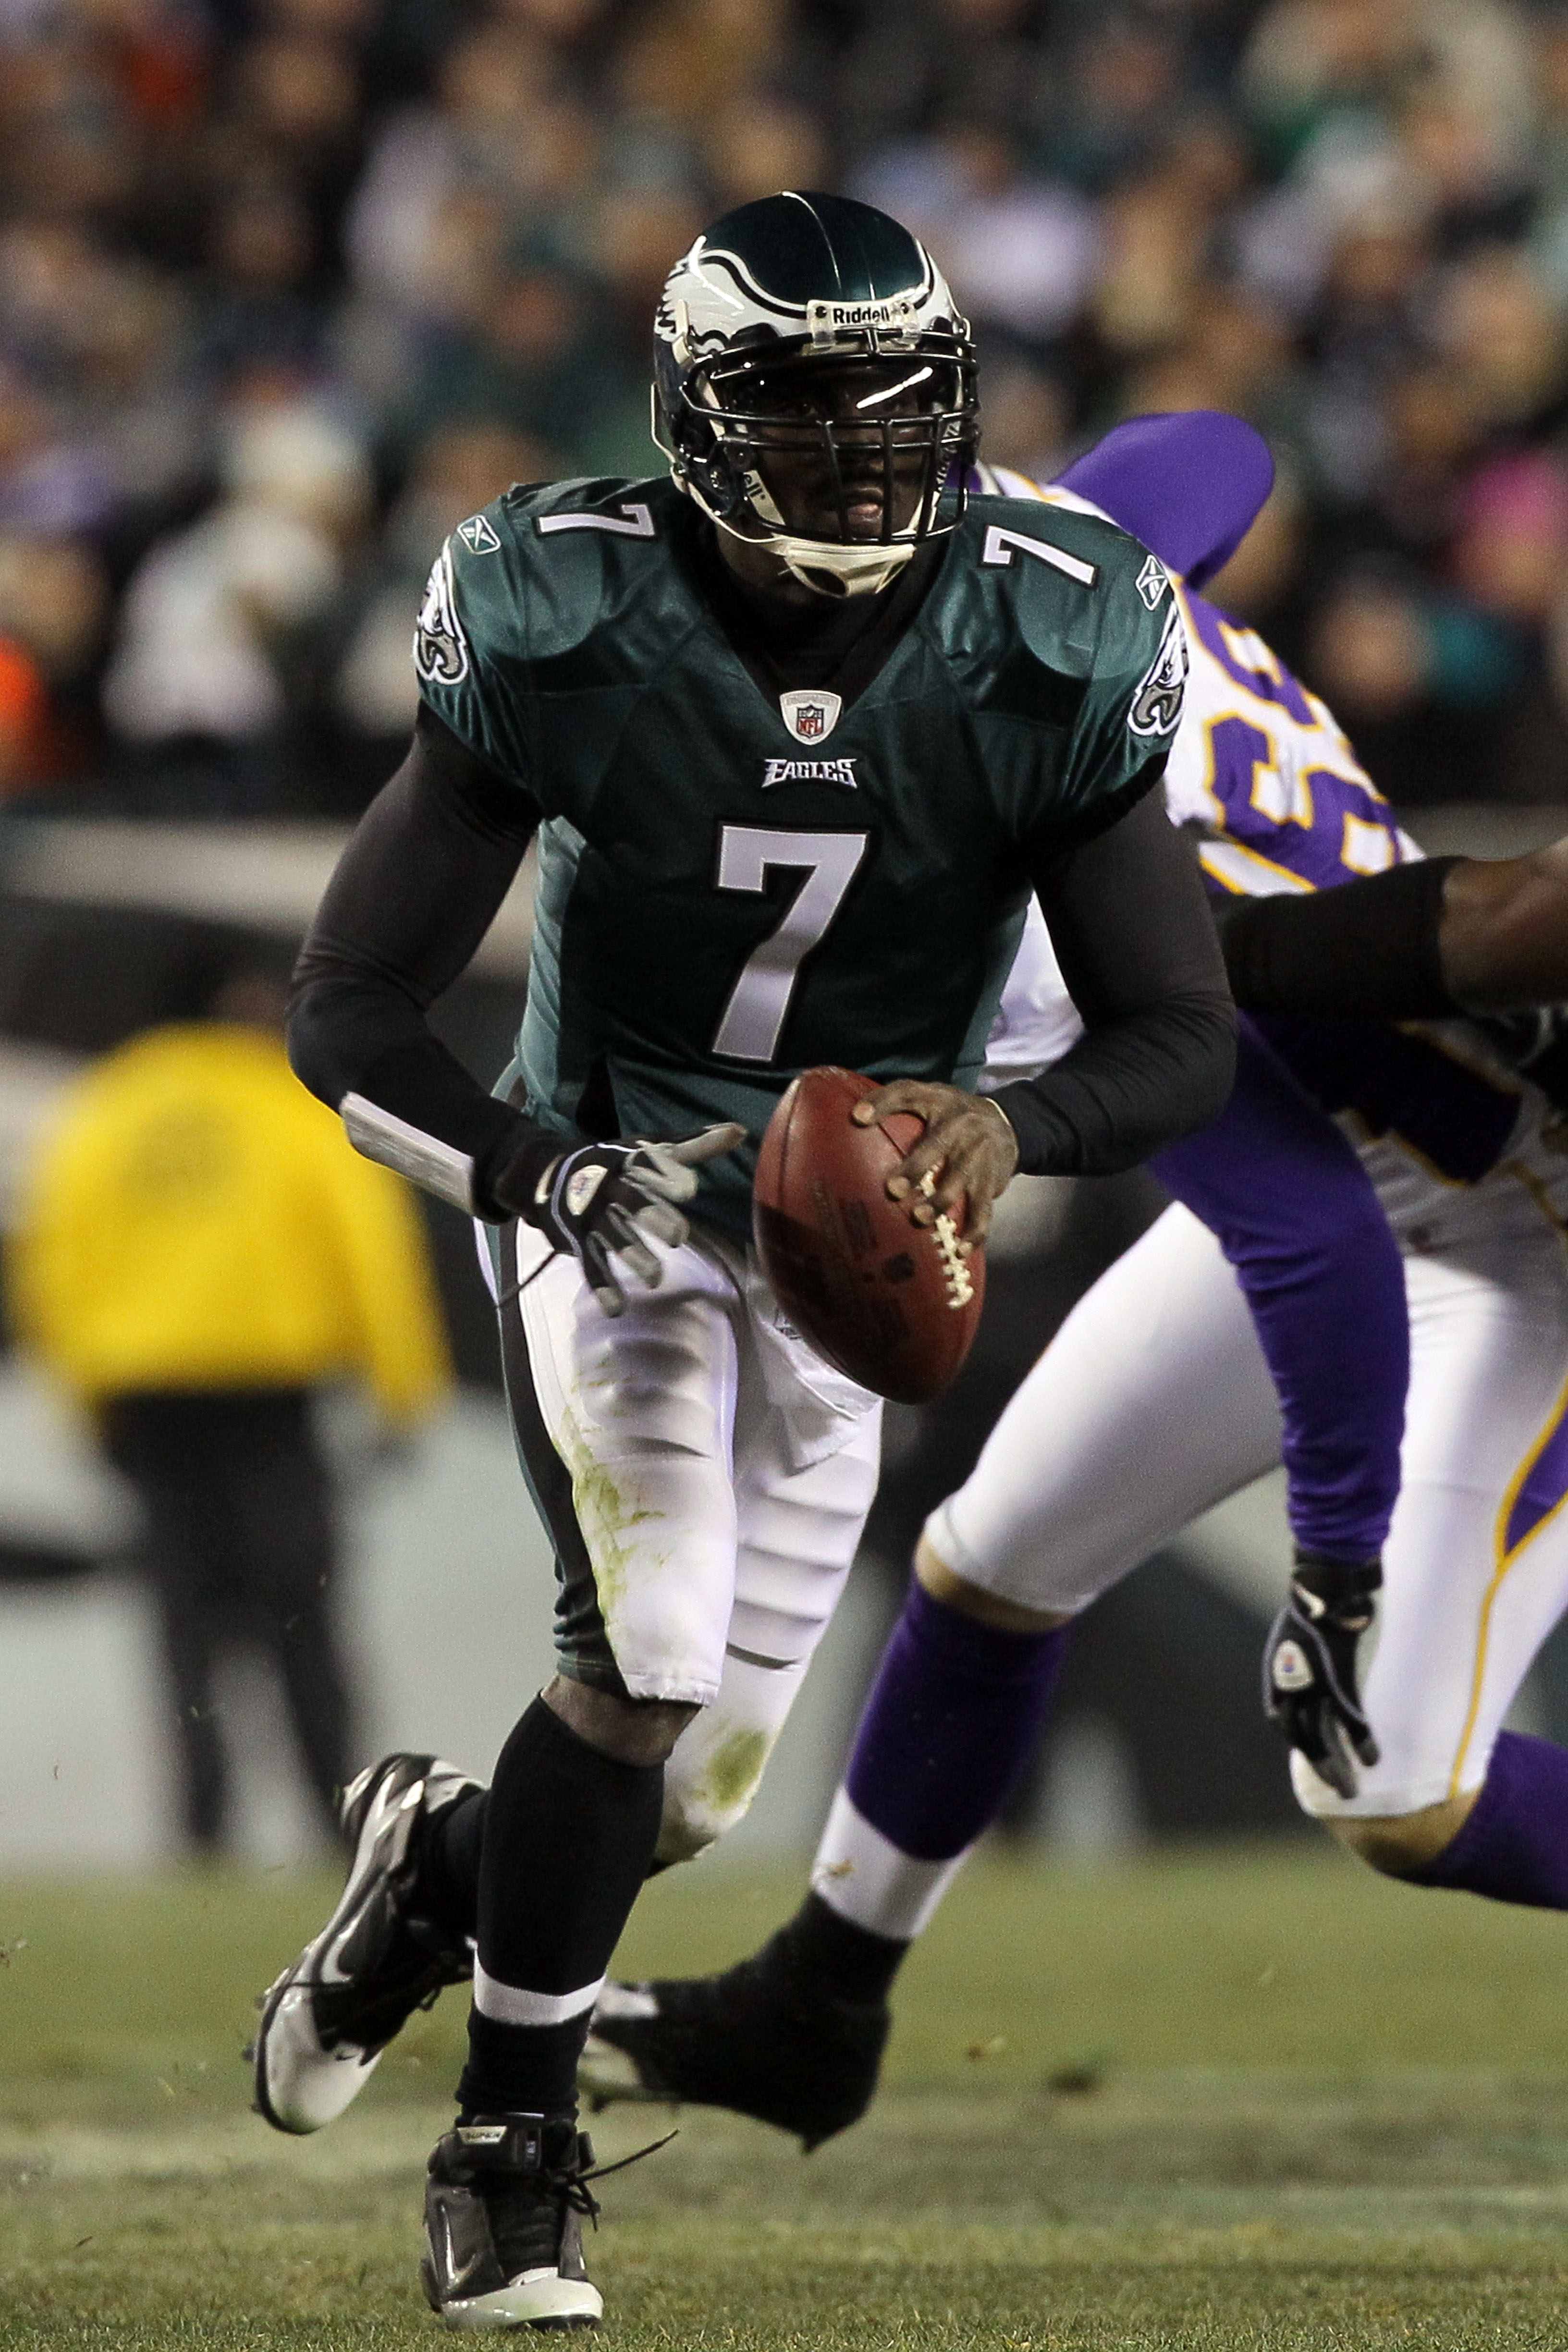 PHILADELPHIA, PA - DECEMBER 28:  Michael Vick #7 of the Philadelphia Eagles in action against the Minnesota Vikings at Lincoln Financial Field on December 26, 2010 in Philadelphia, Pennsylvania.  (Photo by Jim McIsaac/Getty Images)